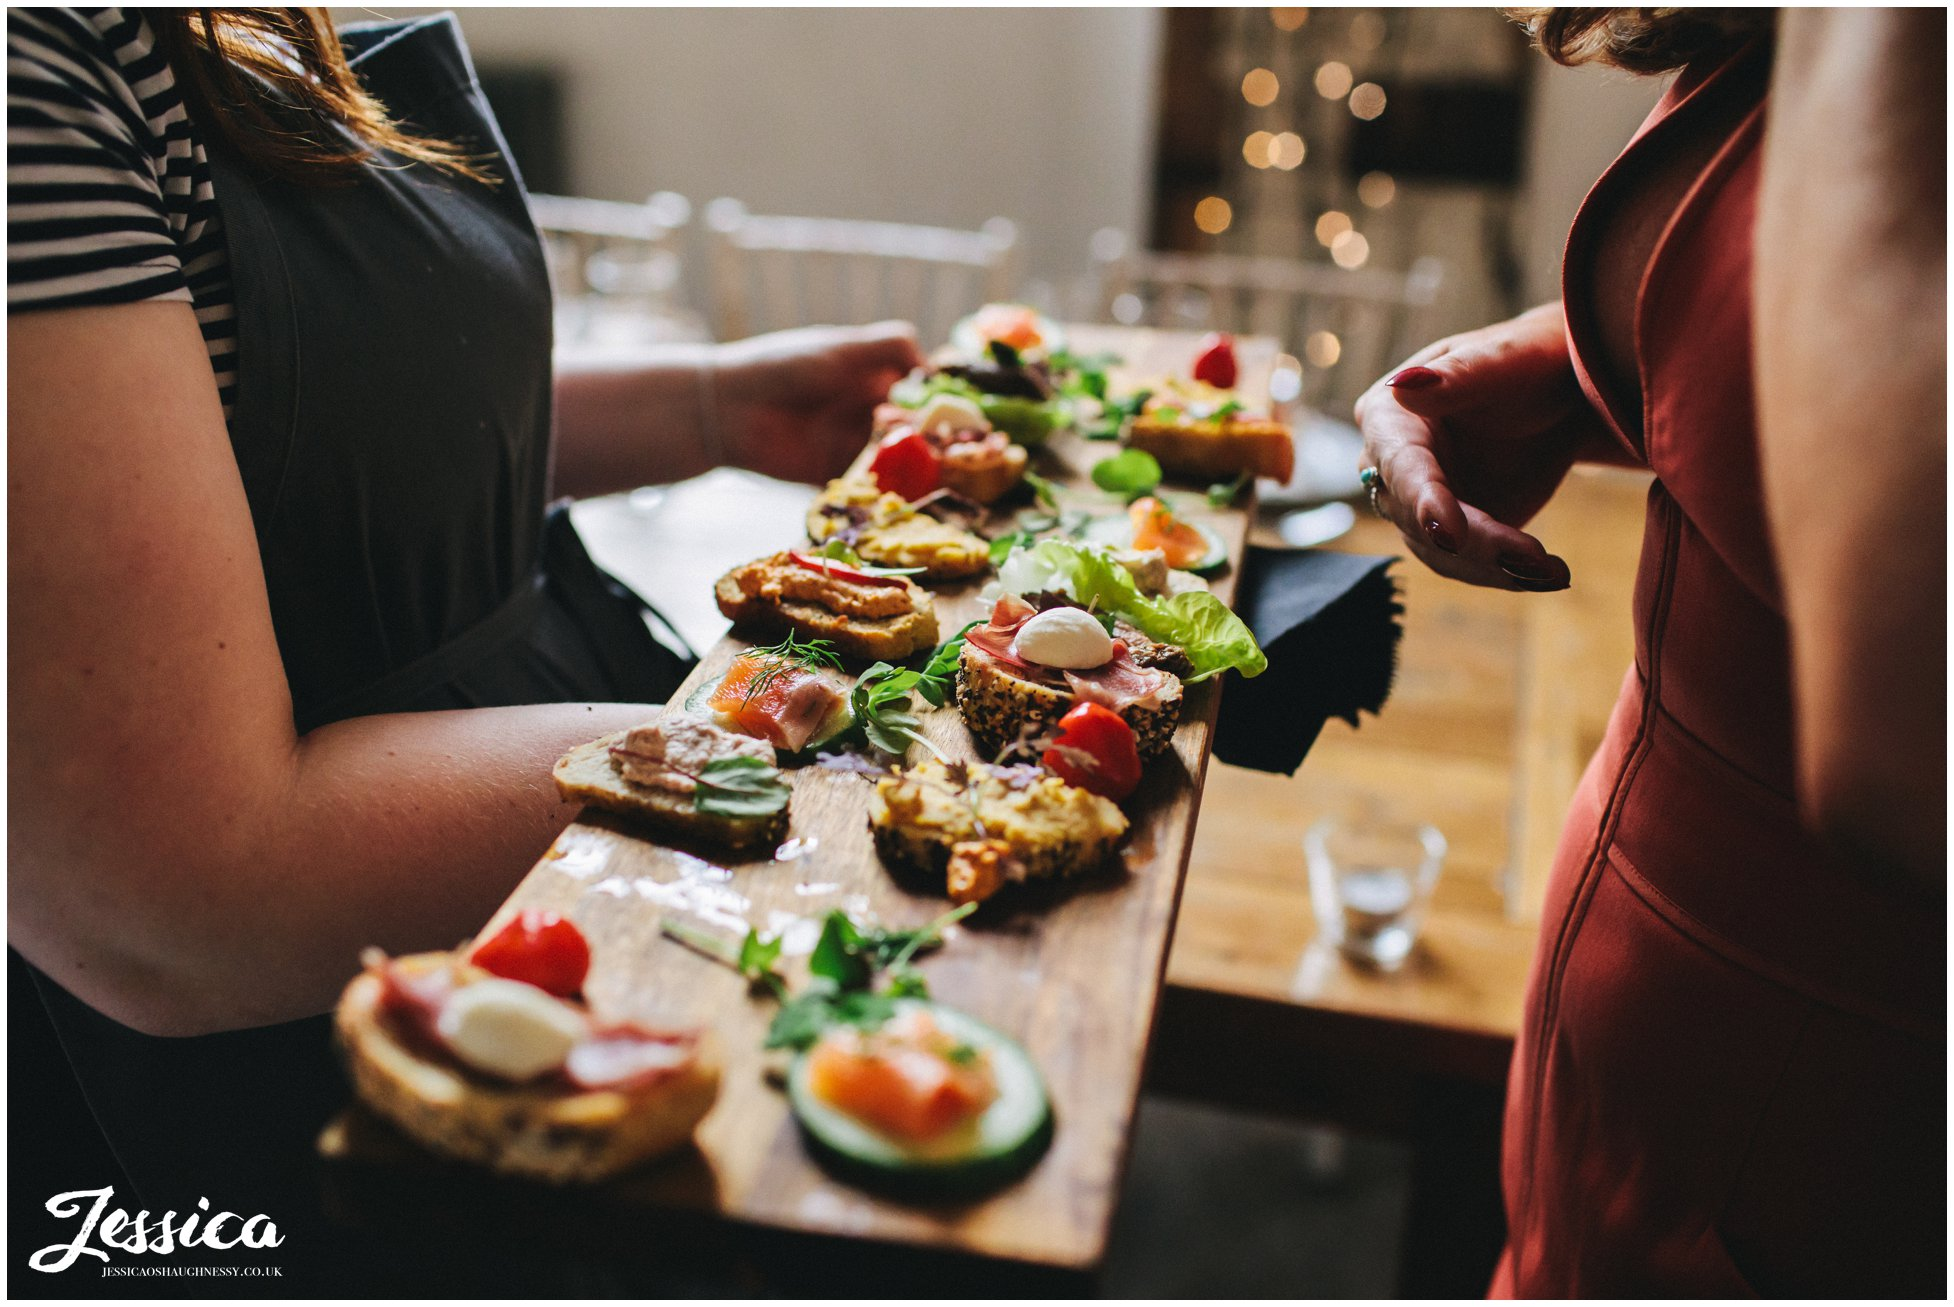 canapes are served to the wedding guests